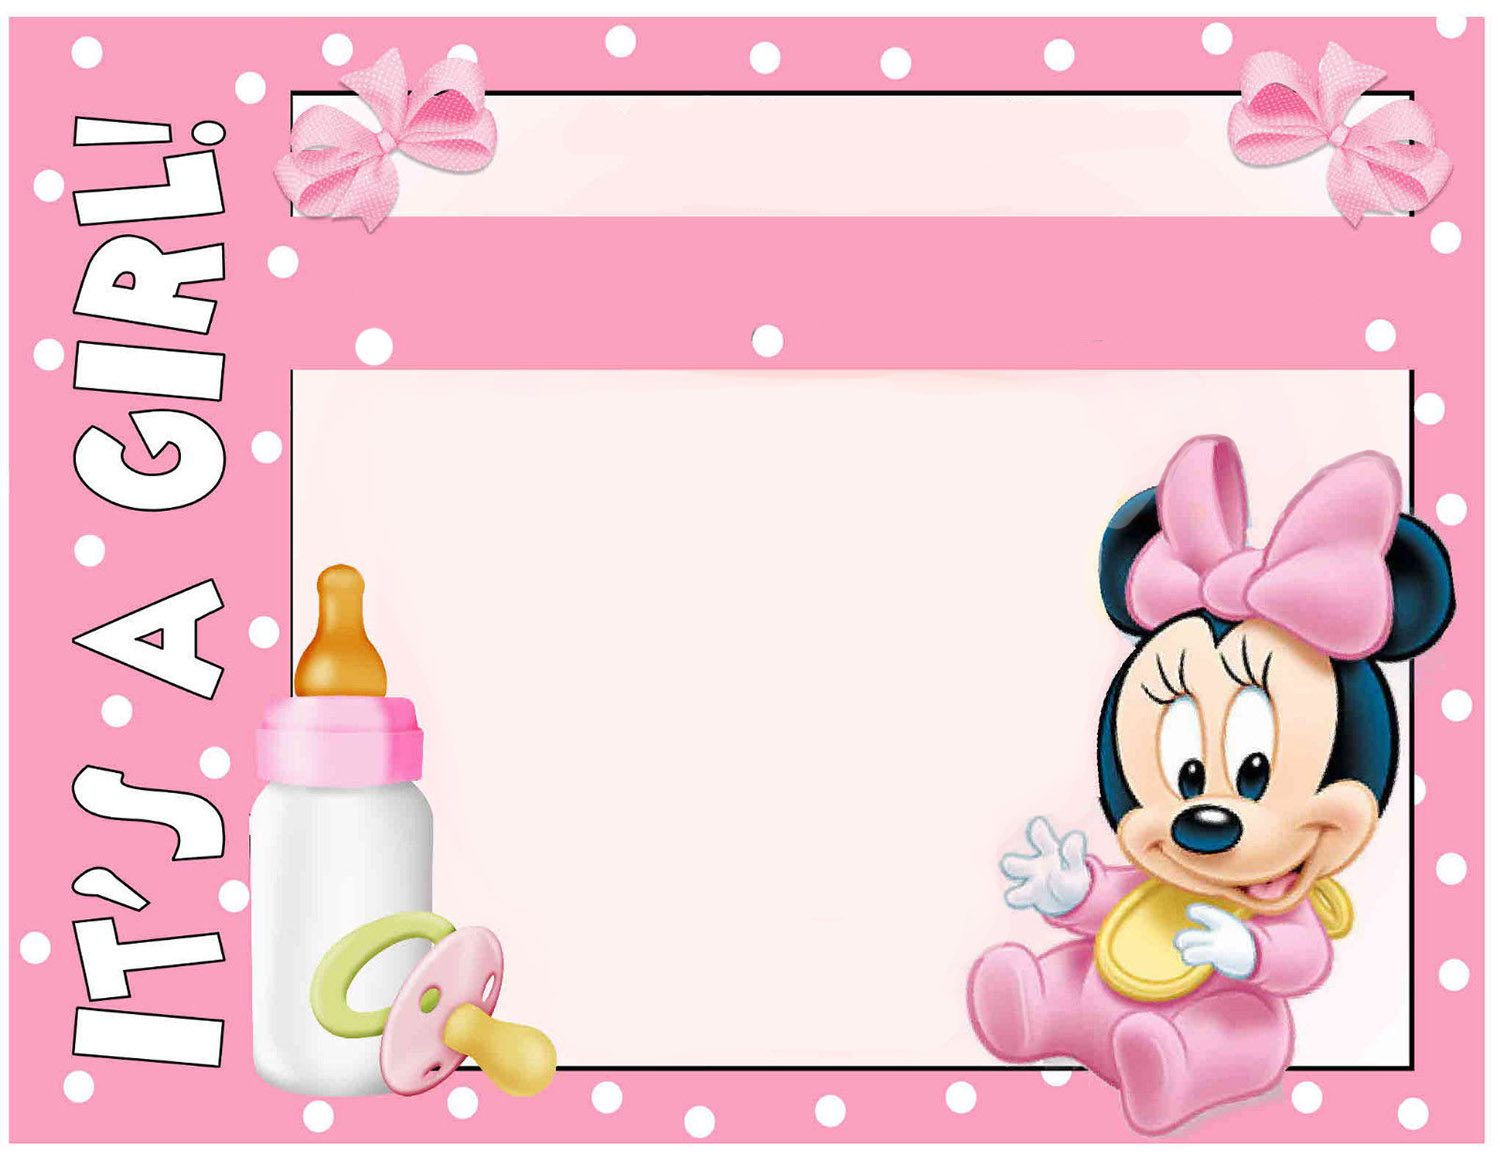 Modern Minnie Mouse Baby Shower Invitation - Free Printable Invitation with Minnie Mouse Baby Shower Invitations